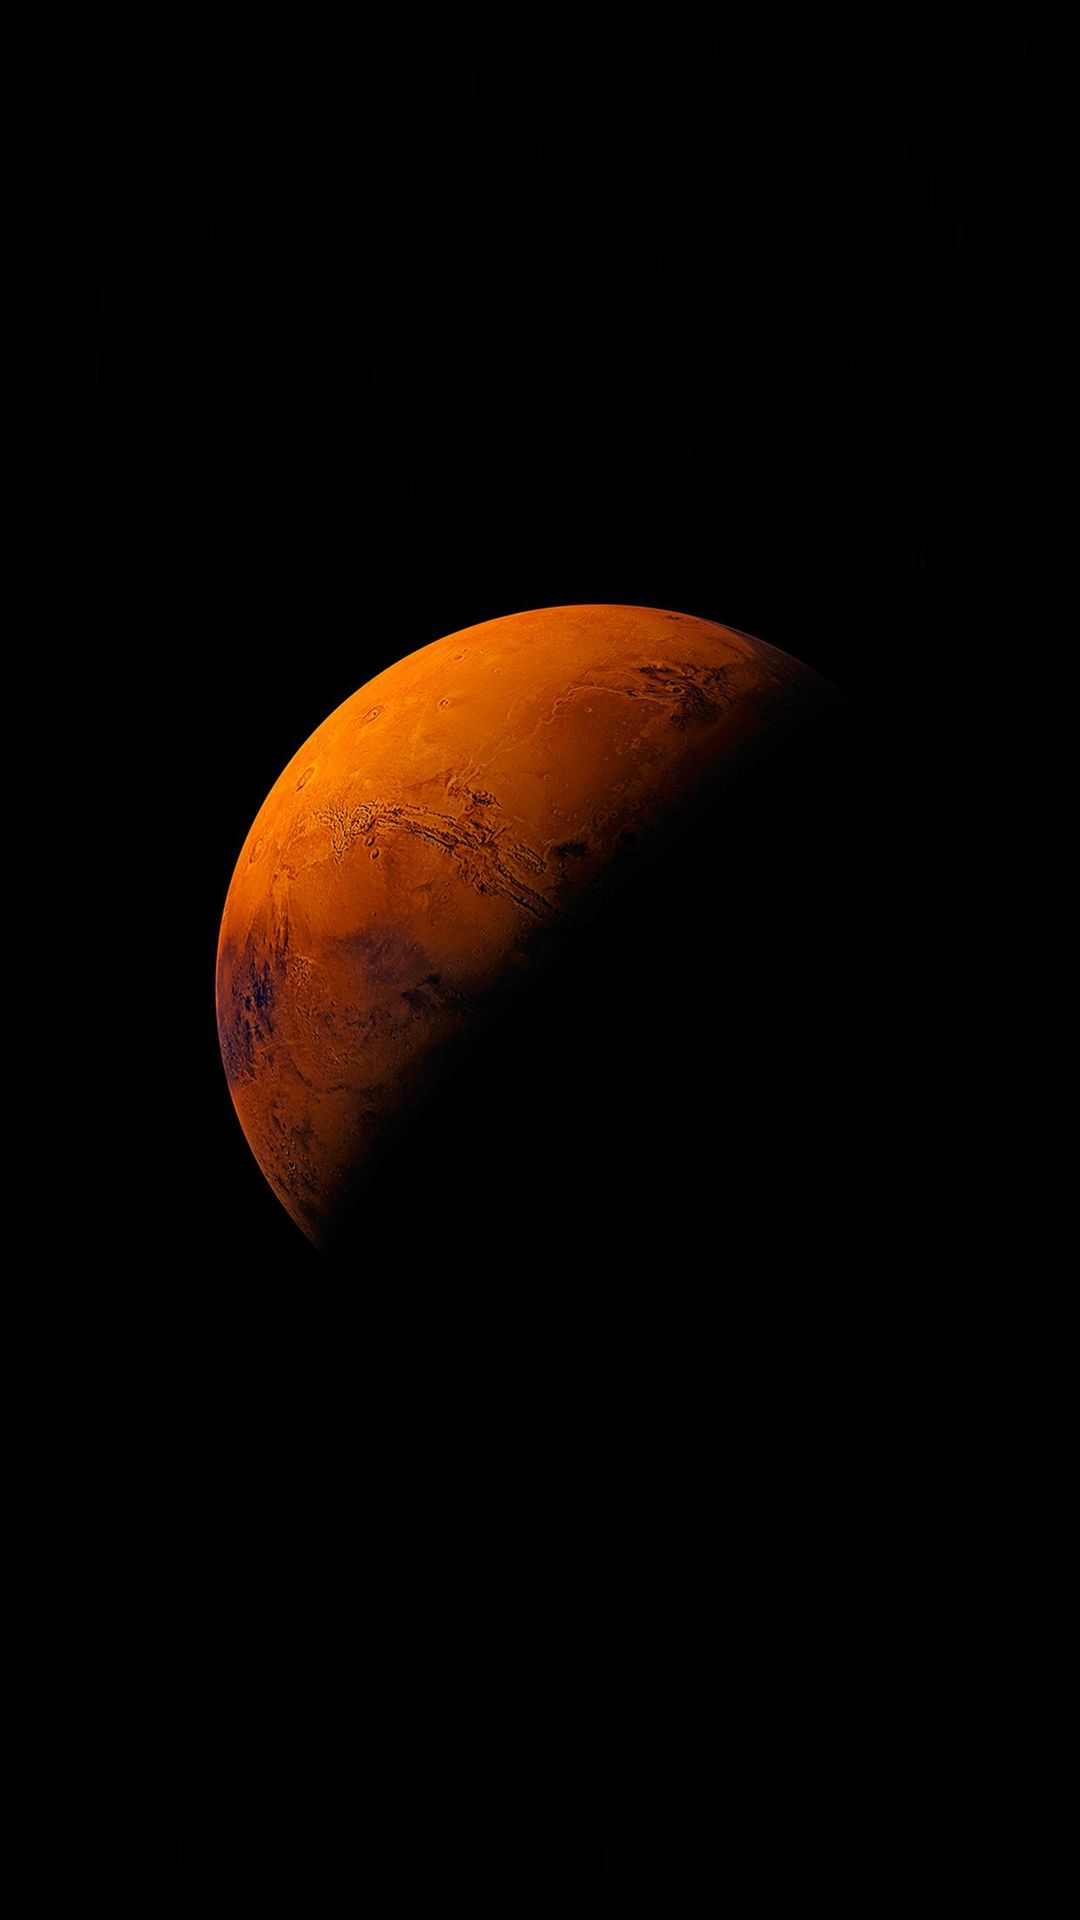 Mars Planet Apple Dark Space Orange IPhone 6 Wallpaper